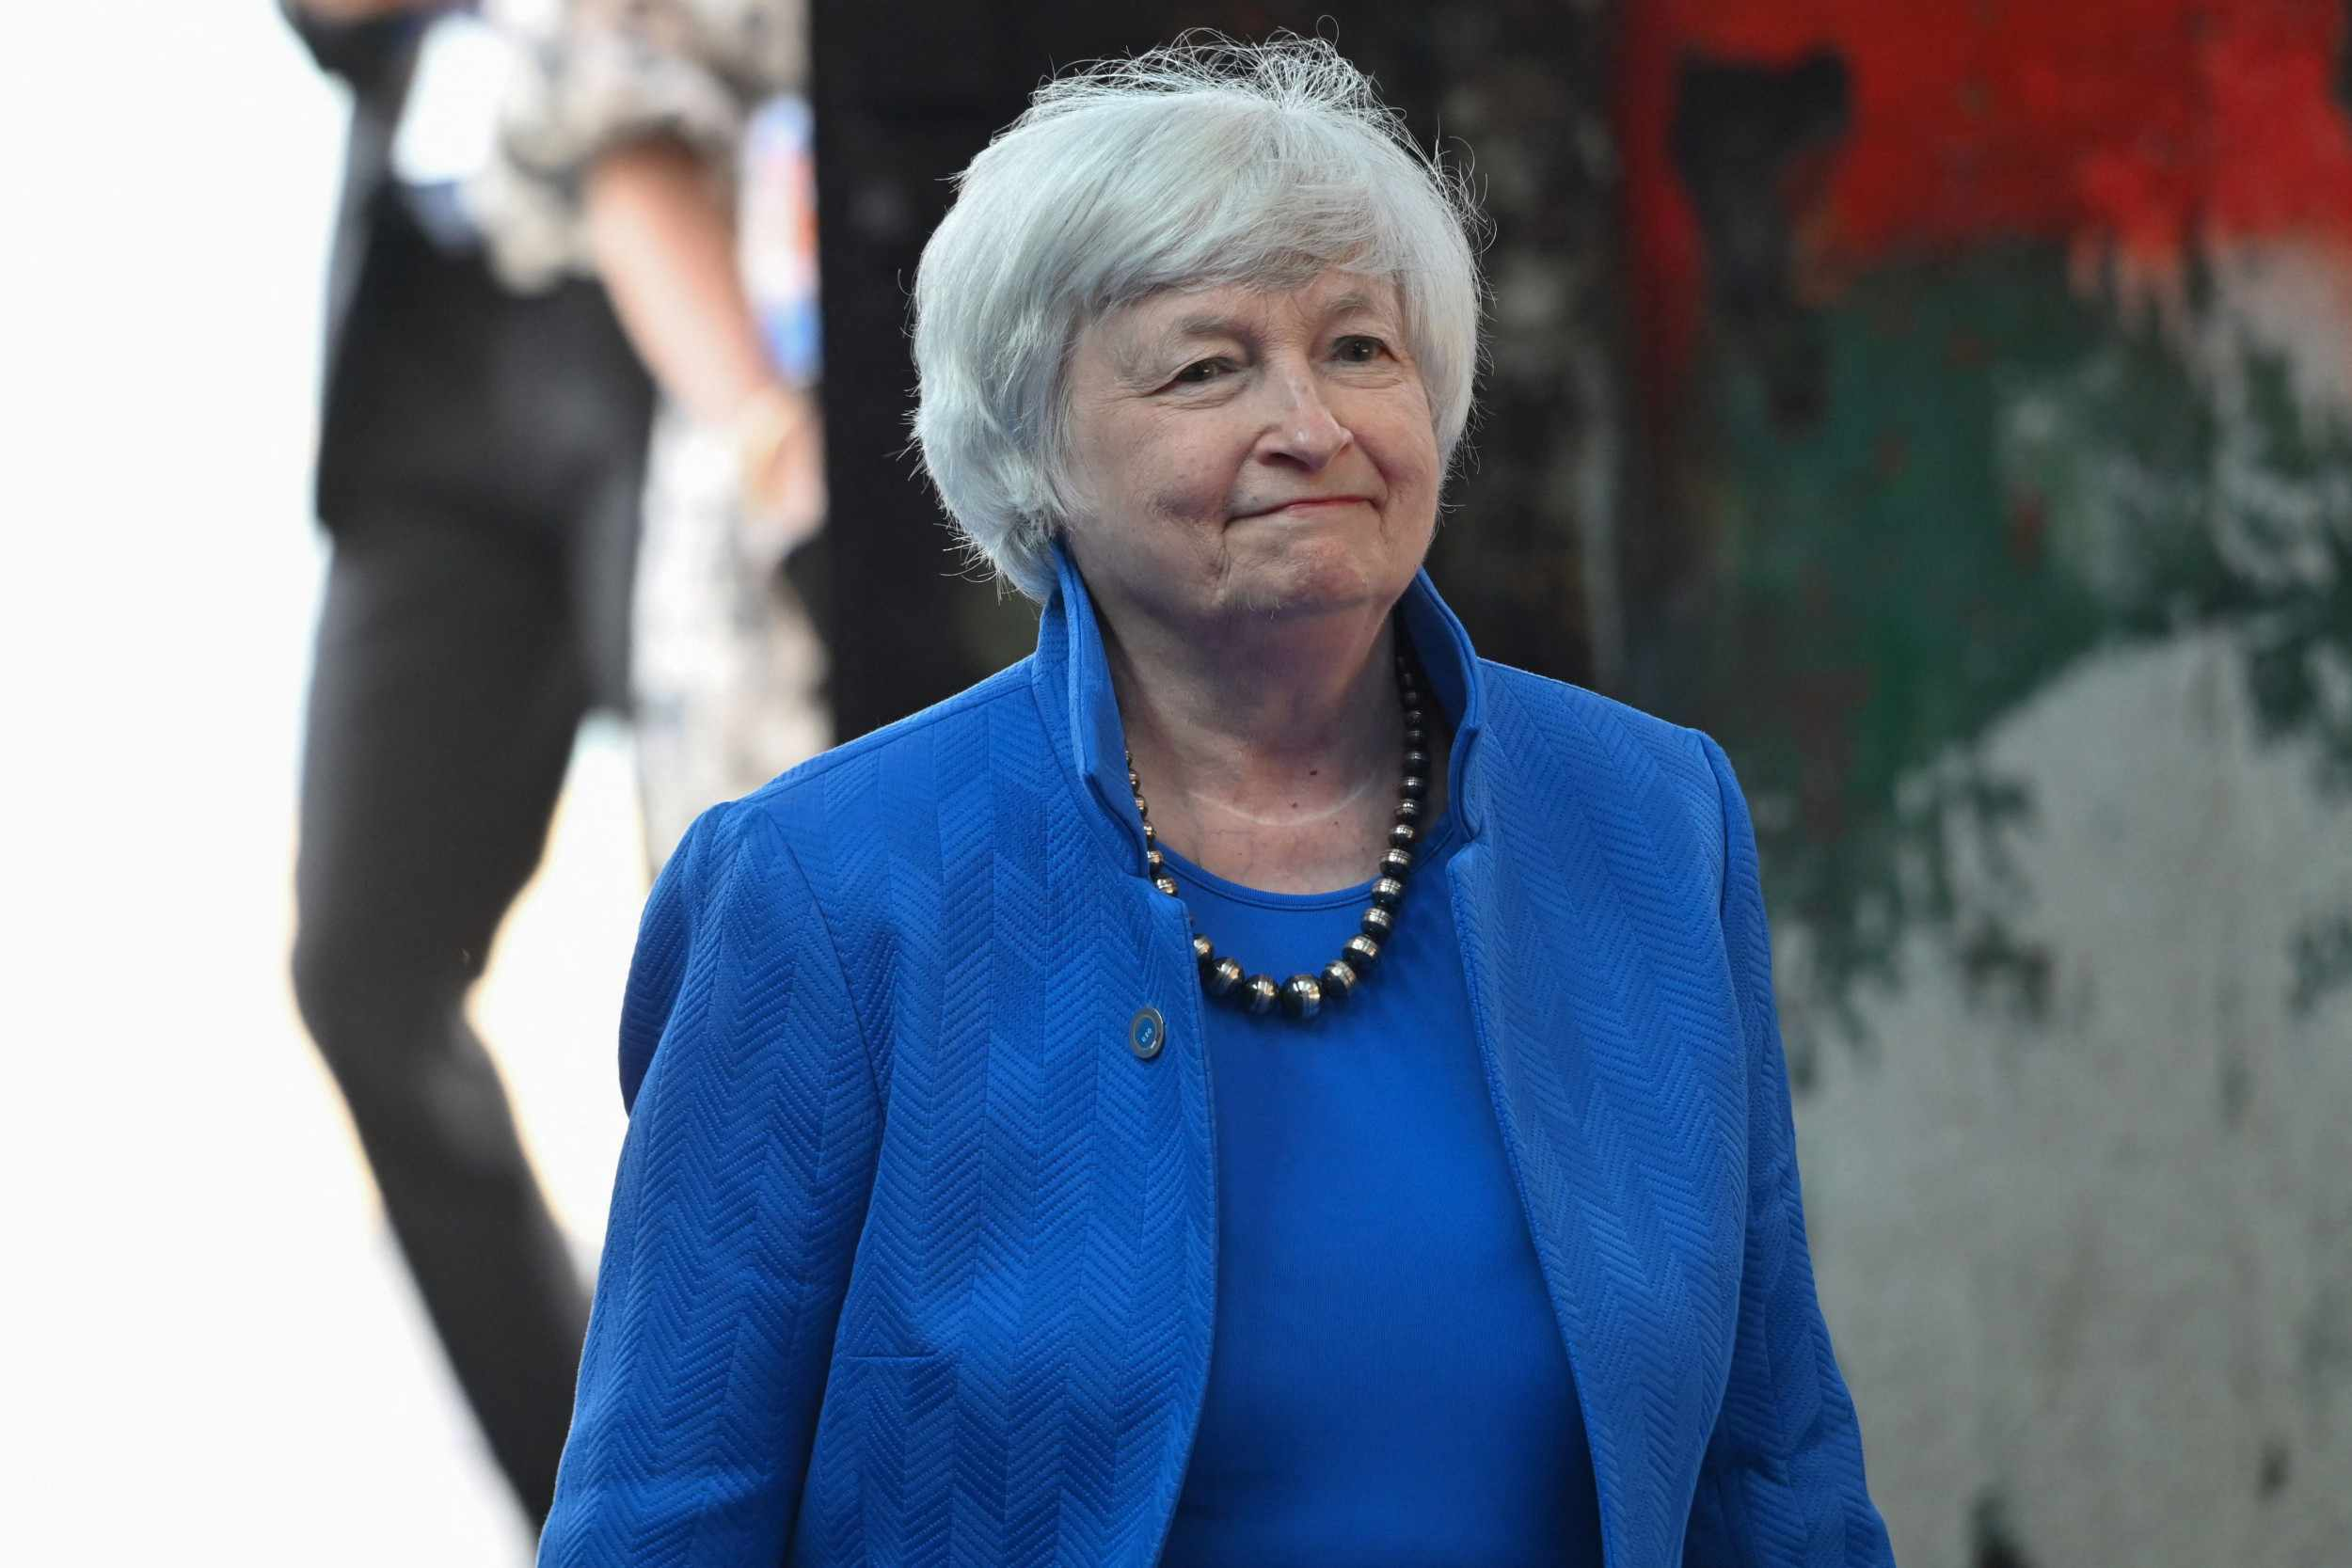 yellen recovery janet delta concerned